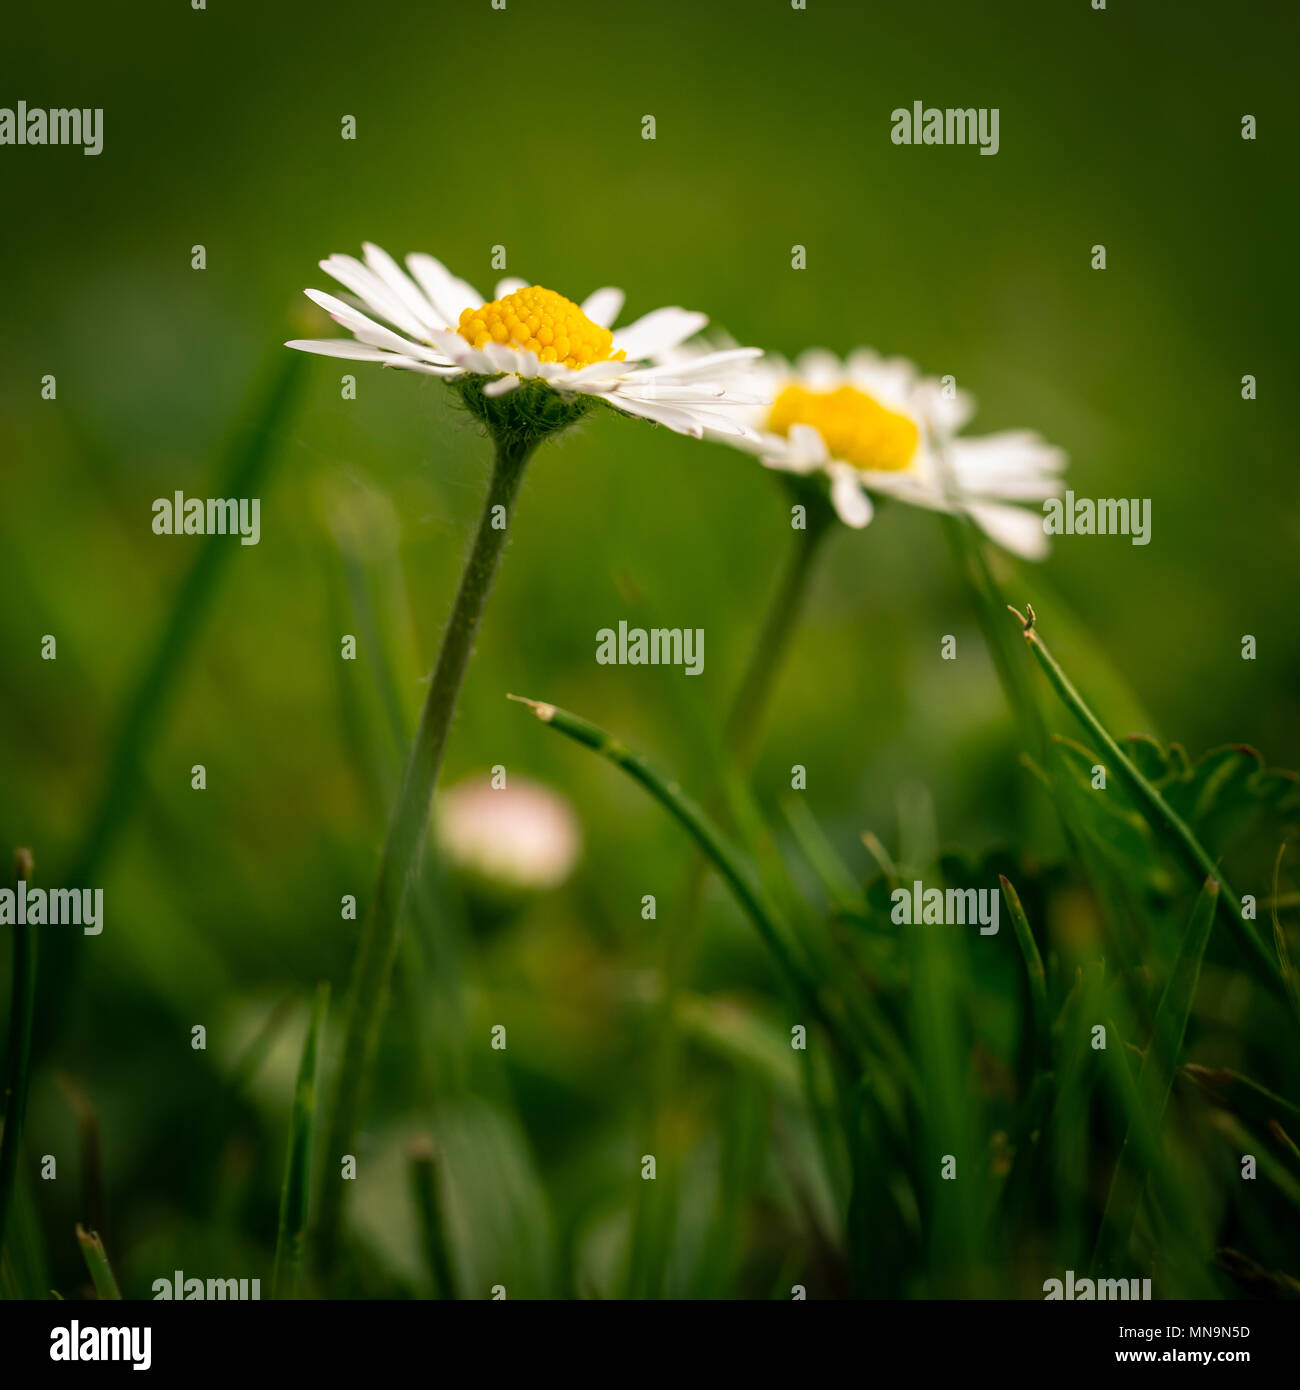 White flowers with yellow centers stock photos white flowers with square photo with two nice daisies flowers have white leaves and golden centers consists of mightylinksfo